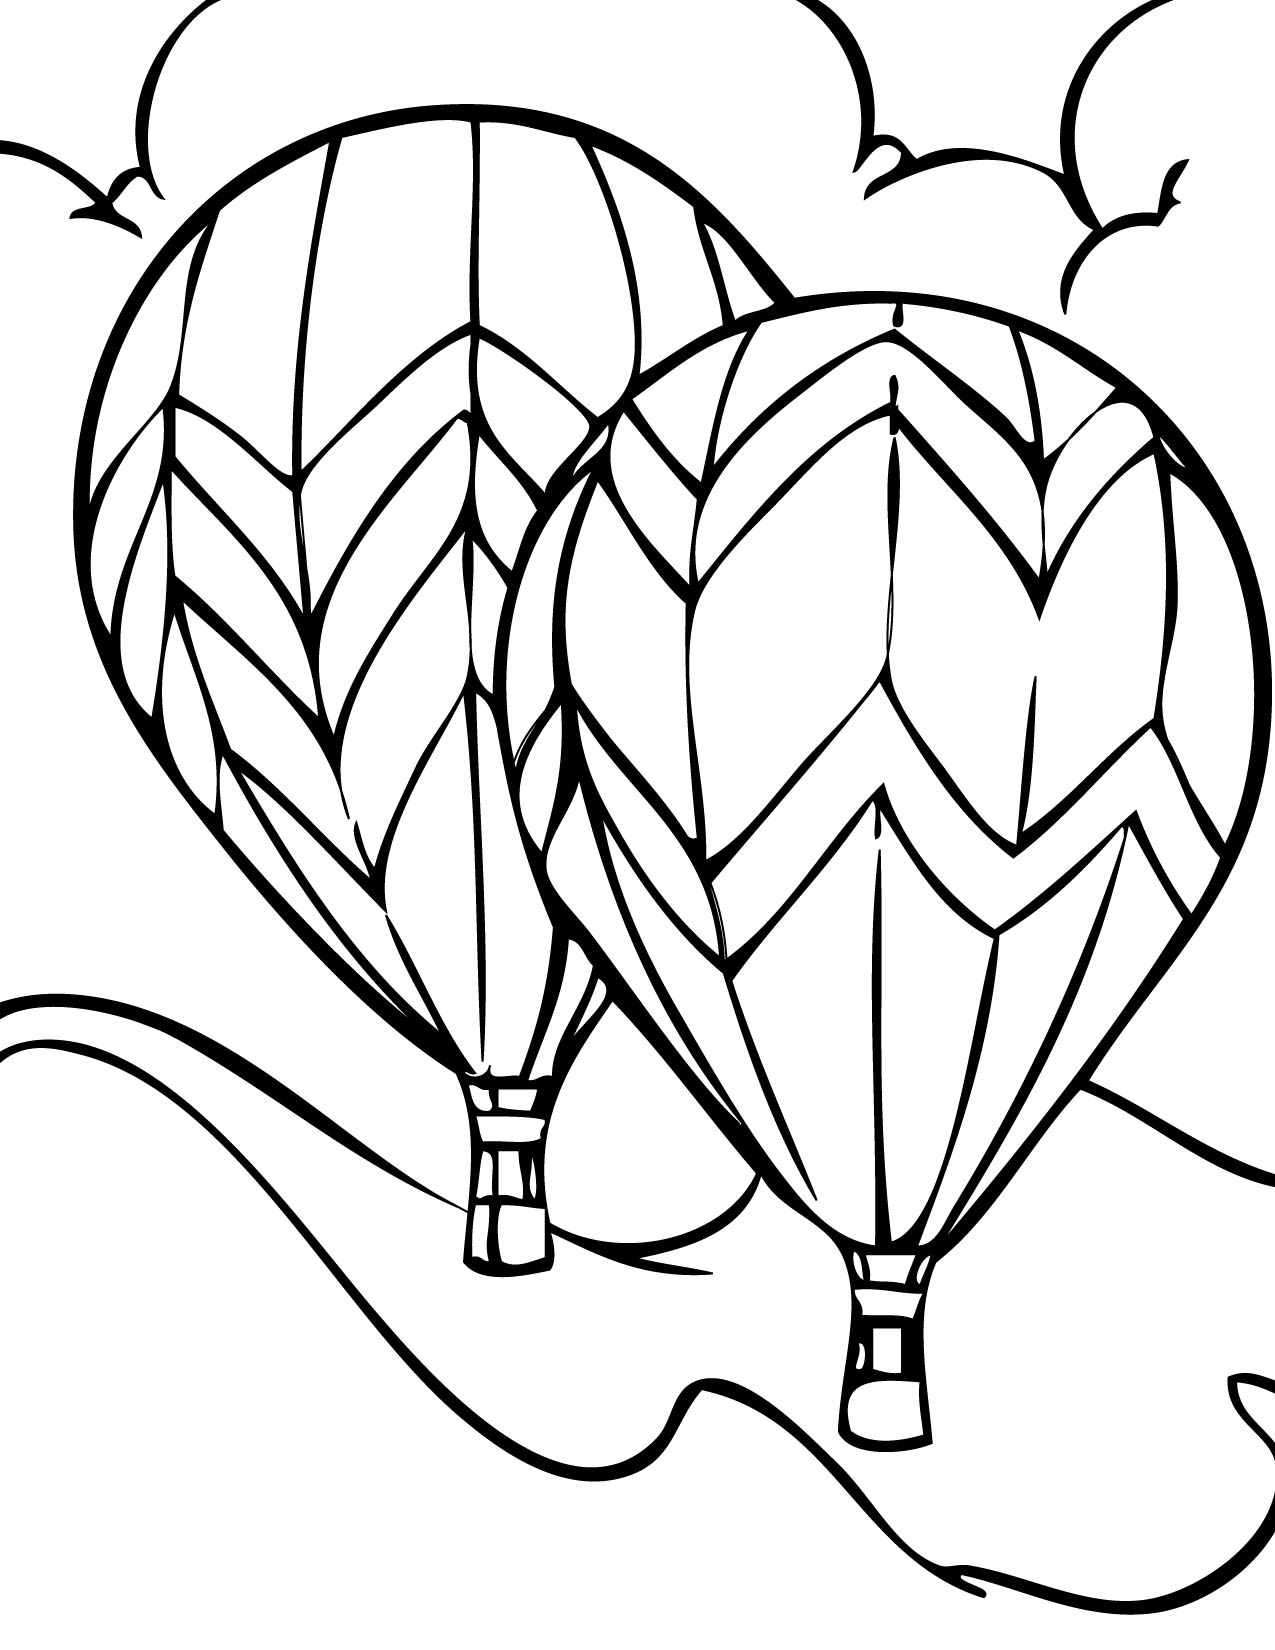 1275x1650 Drawing Of Hot Air Balloon Hot Air Balloon Drawing Template